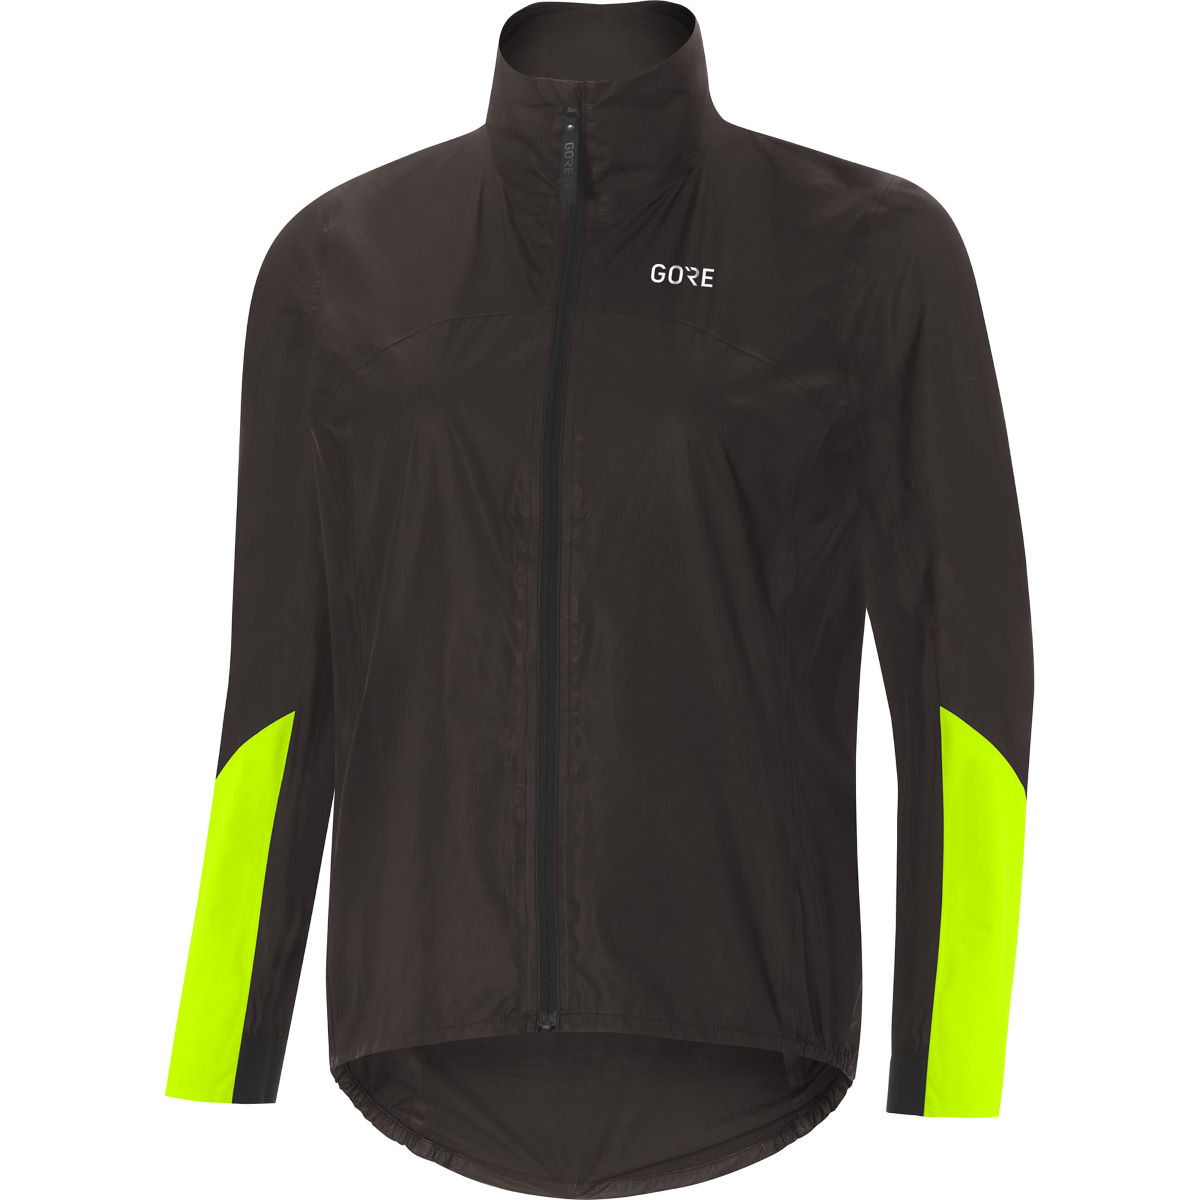 Chaqueta Gore ONE Gore-Tex Active para mujer  - Impermeables - ciclismo